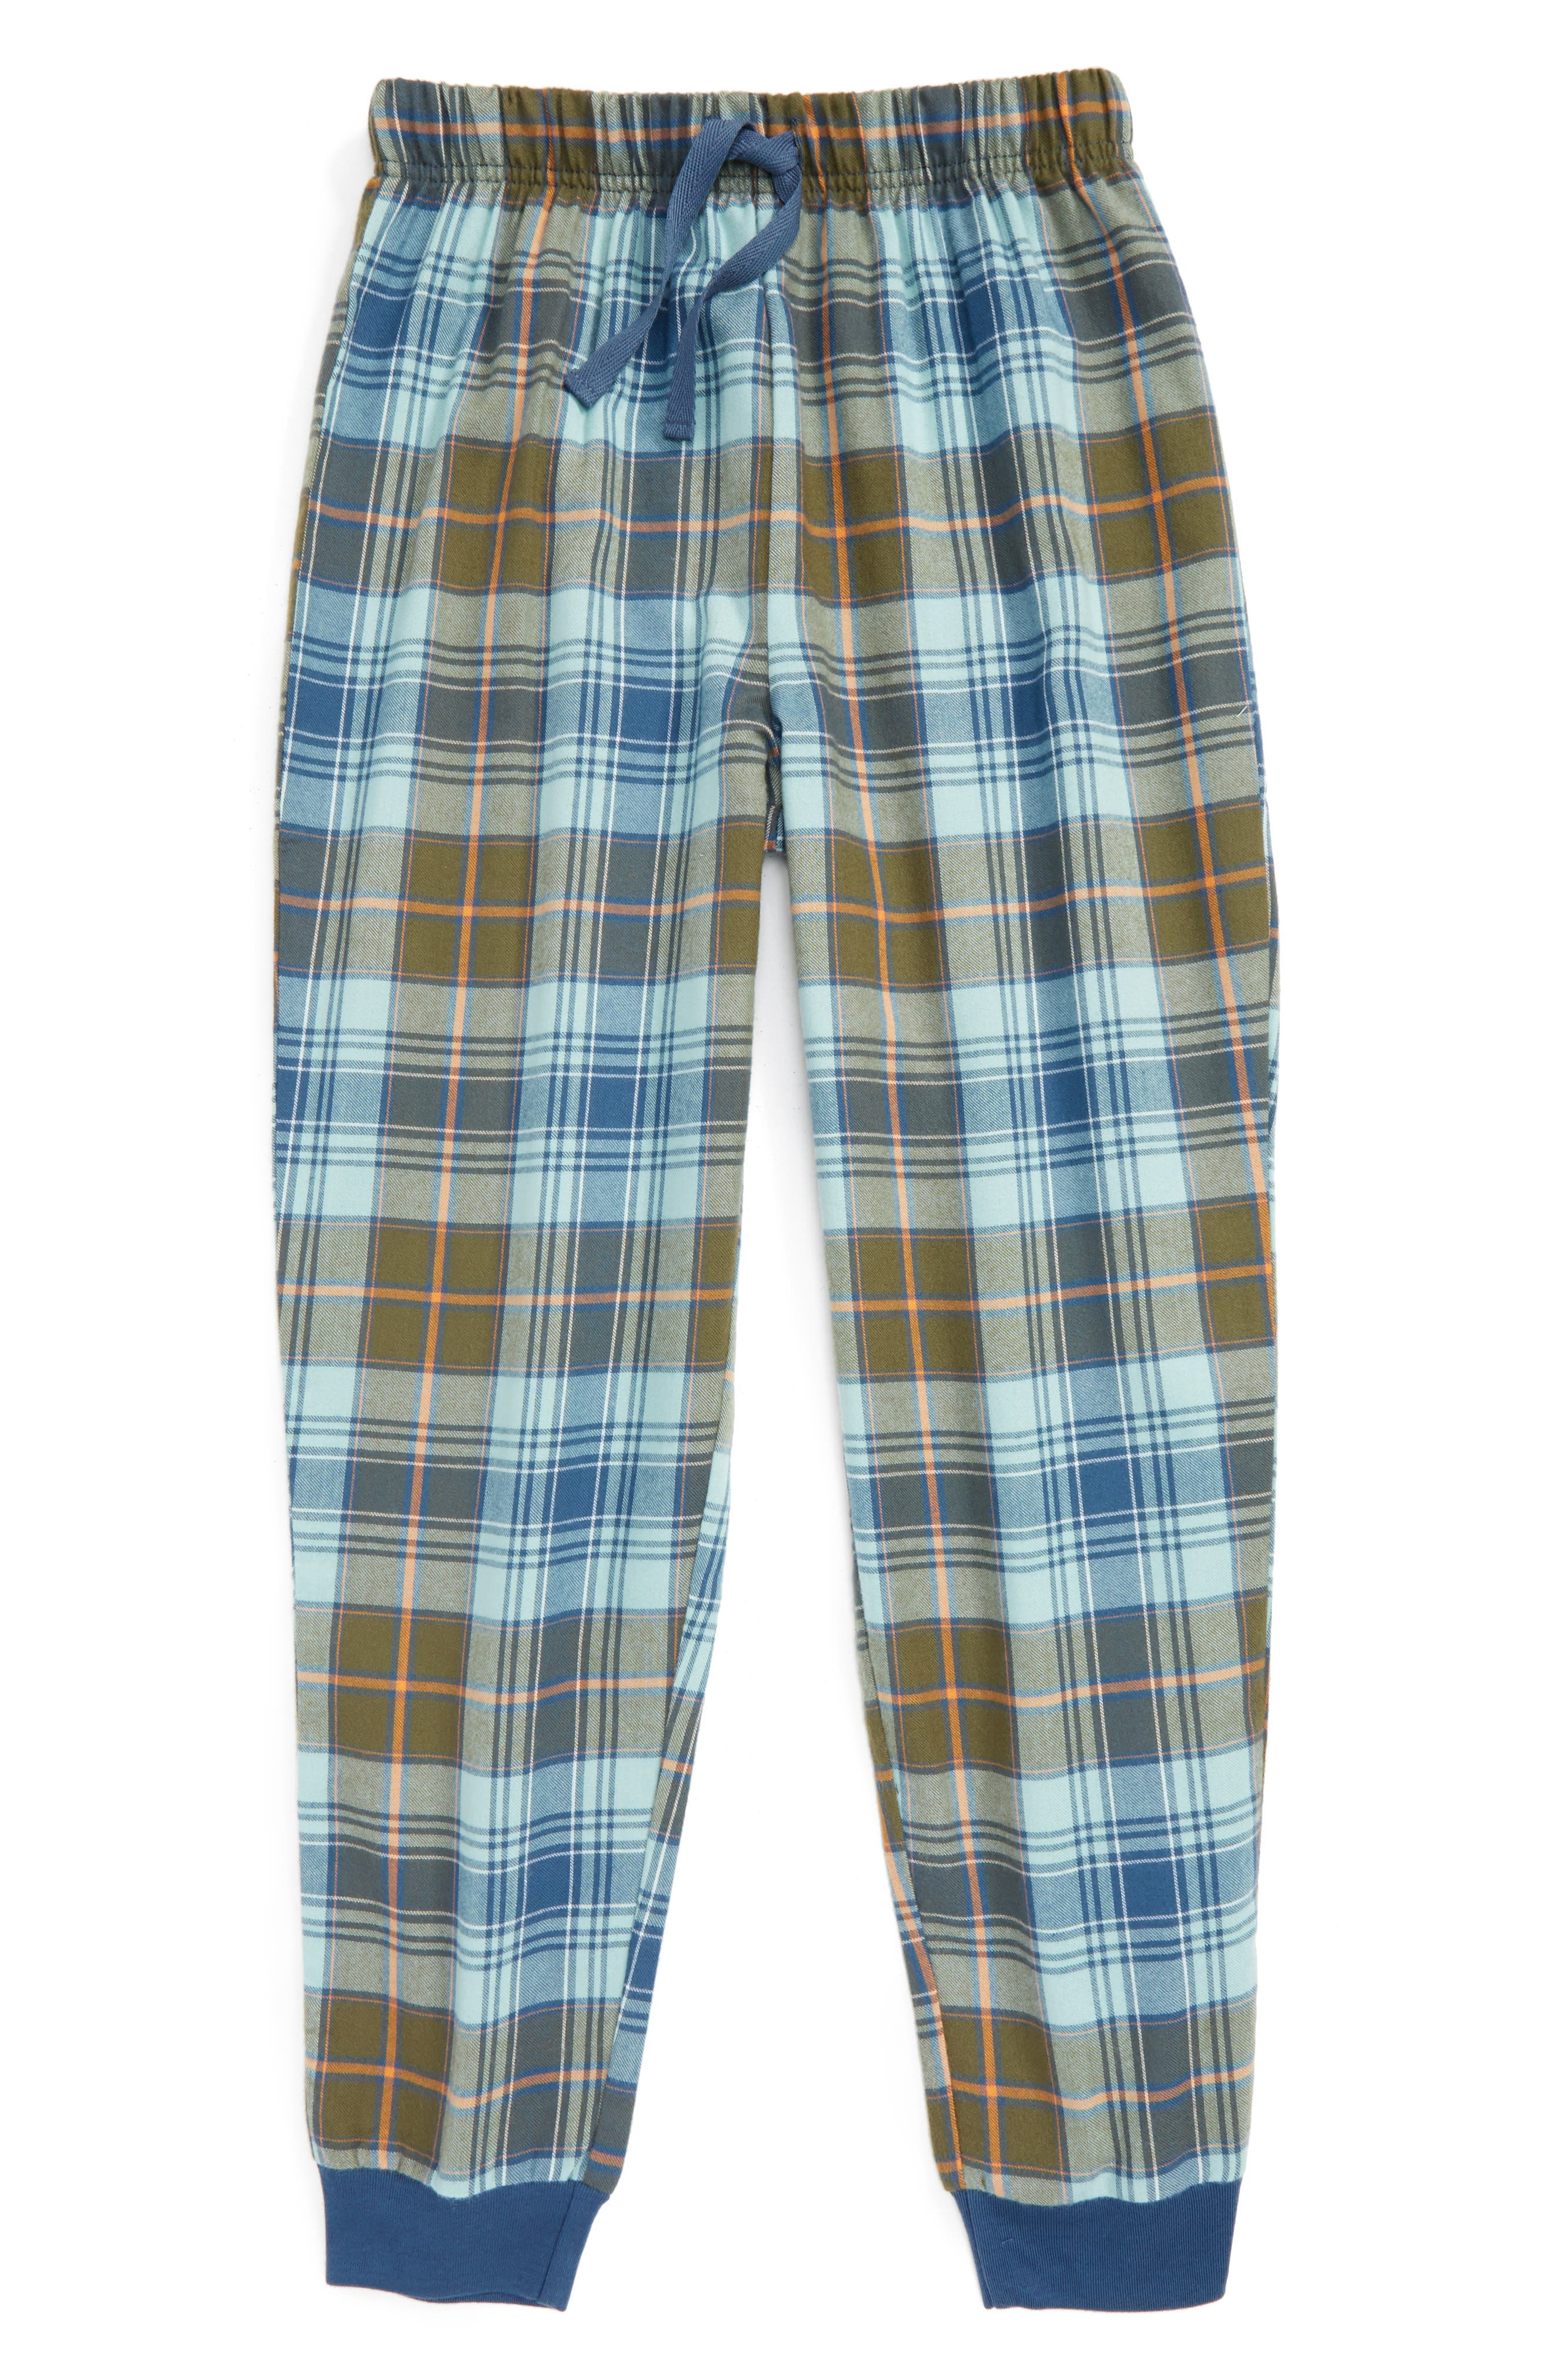 Alternate Image 1 Selected - Tucker + Tate Flannel Jogger Pants (Little Boys & Big Boys)